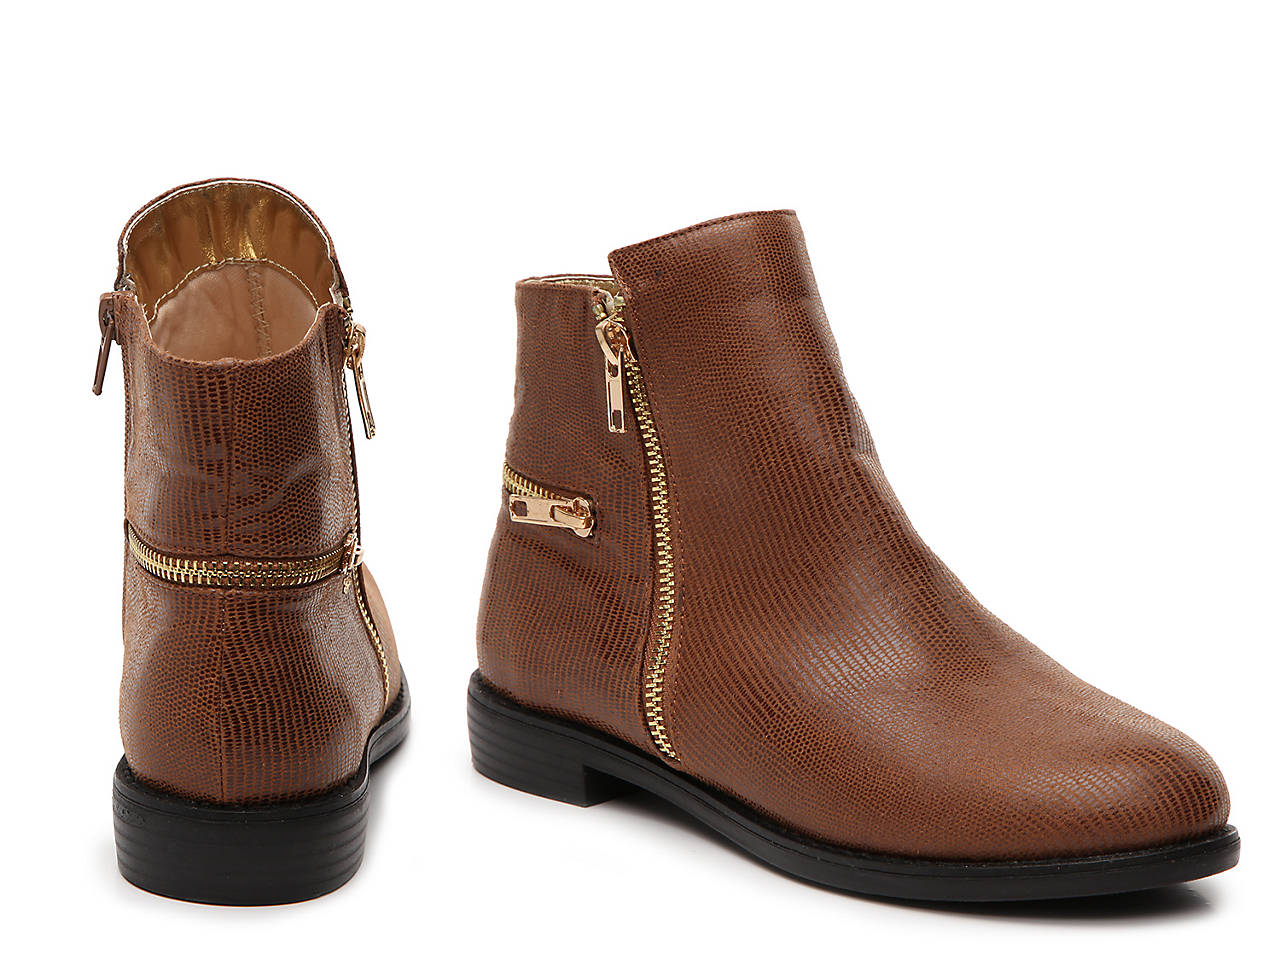 Find great deals on eBay for dsw boots. Shop with confidence.